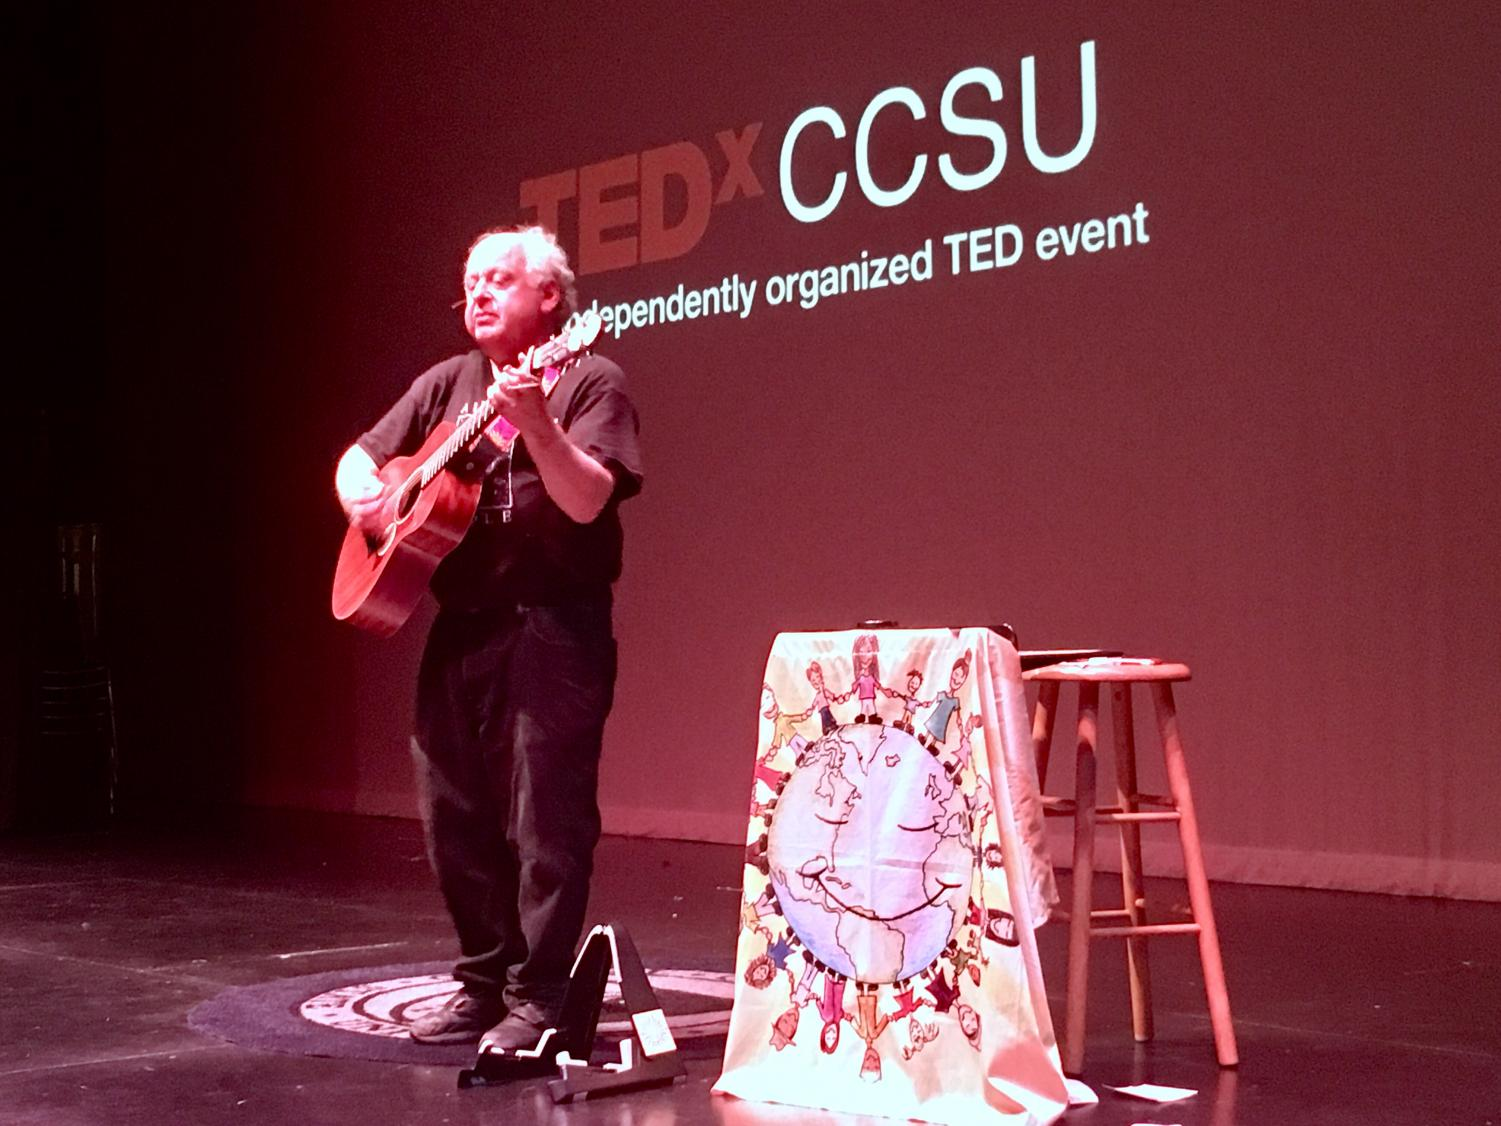 TedxCCSU+is+speakers+carried+an+inspirational+theme+of+dreams+and+goals.